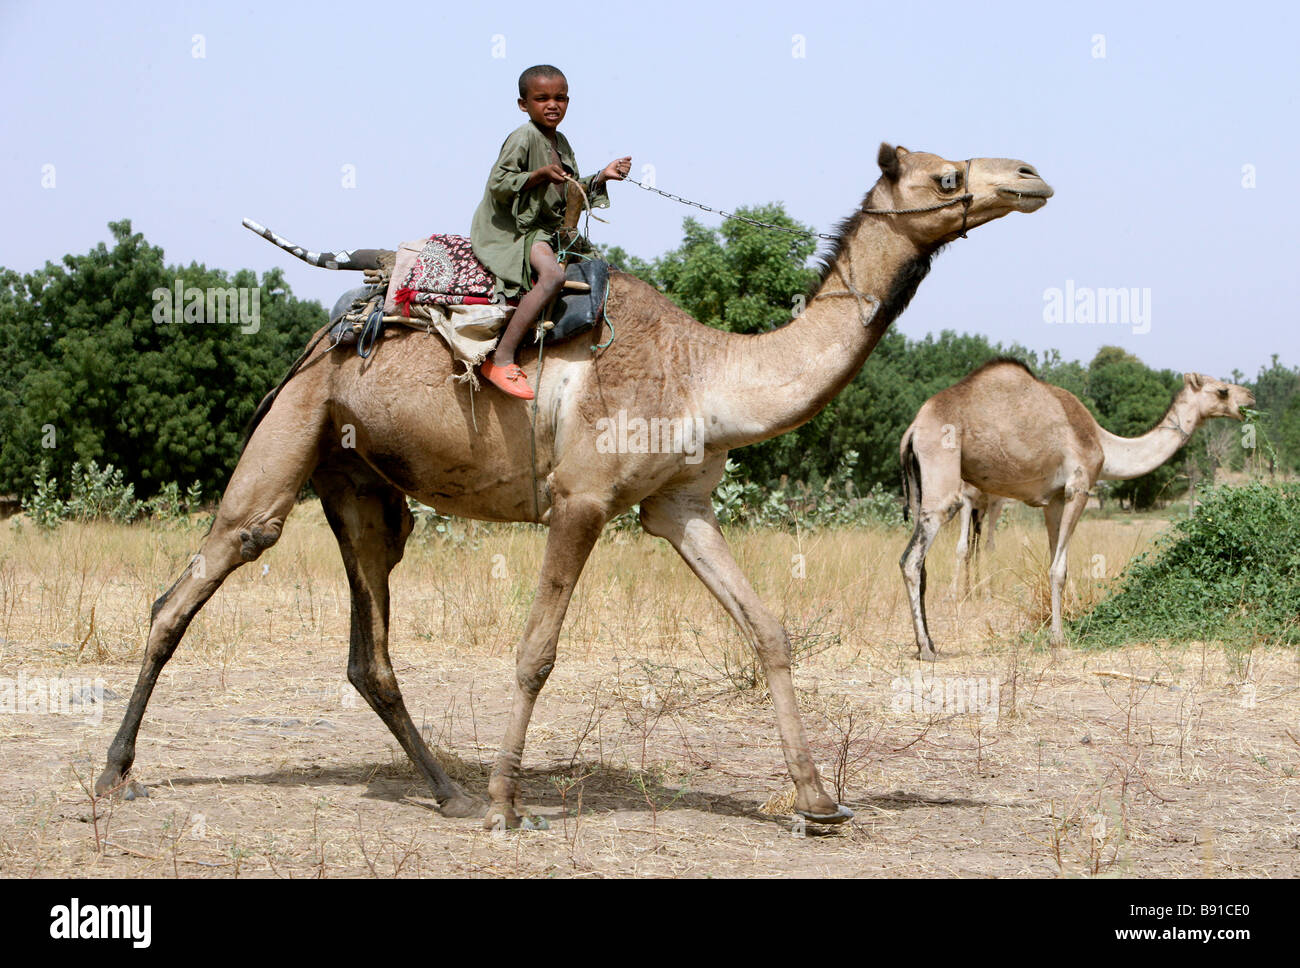 Nigeria: young nomad boy riding on the back of his camel - Stock Image